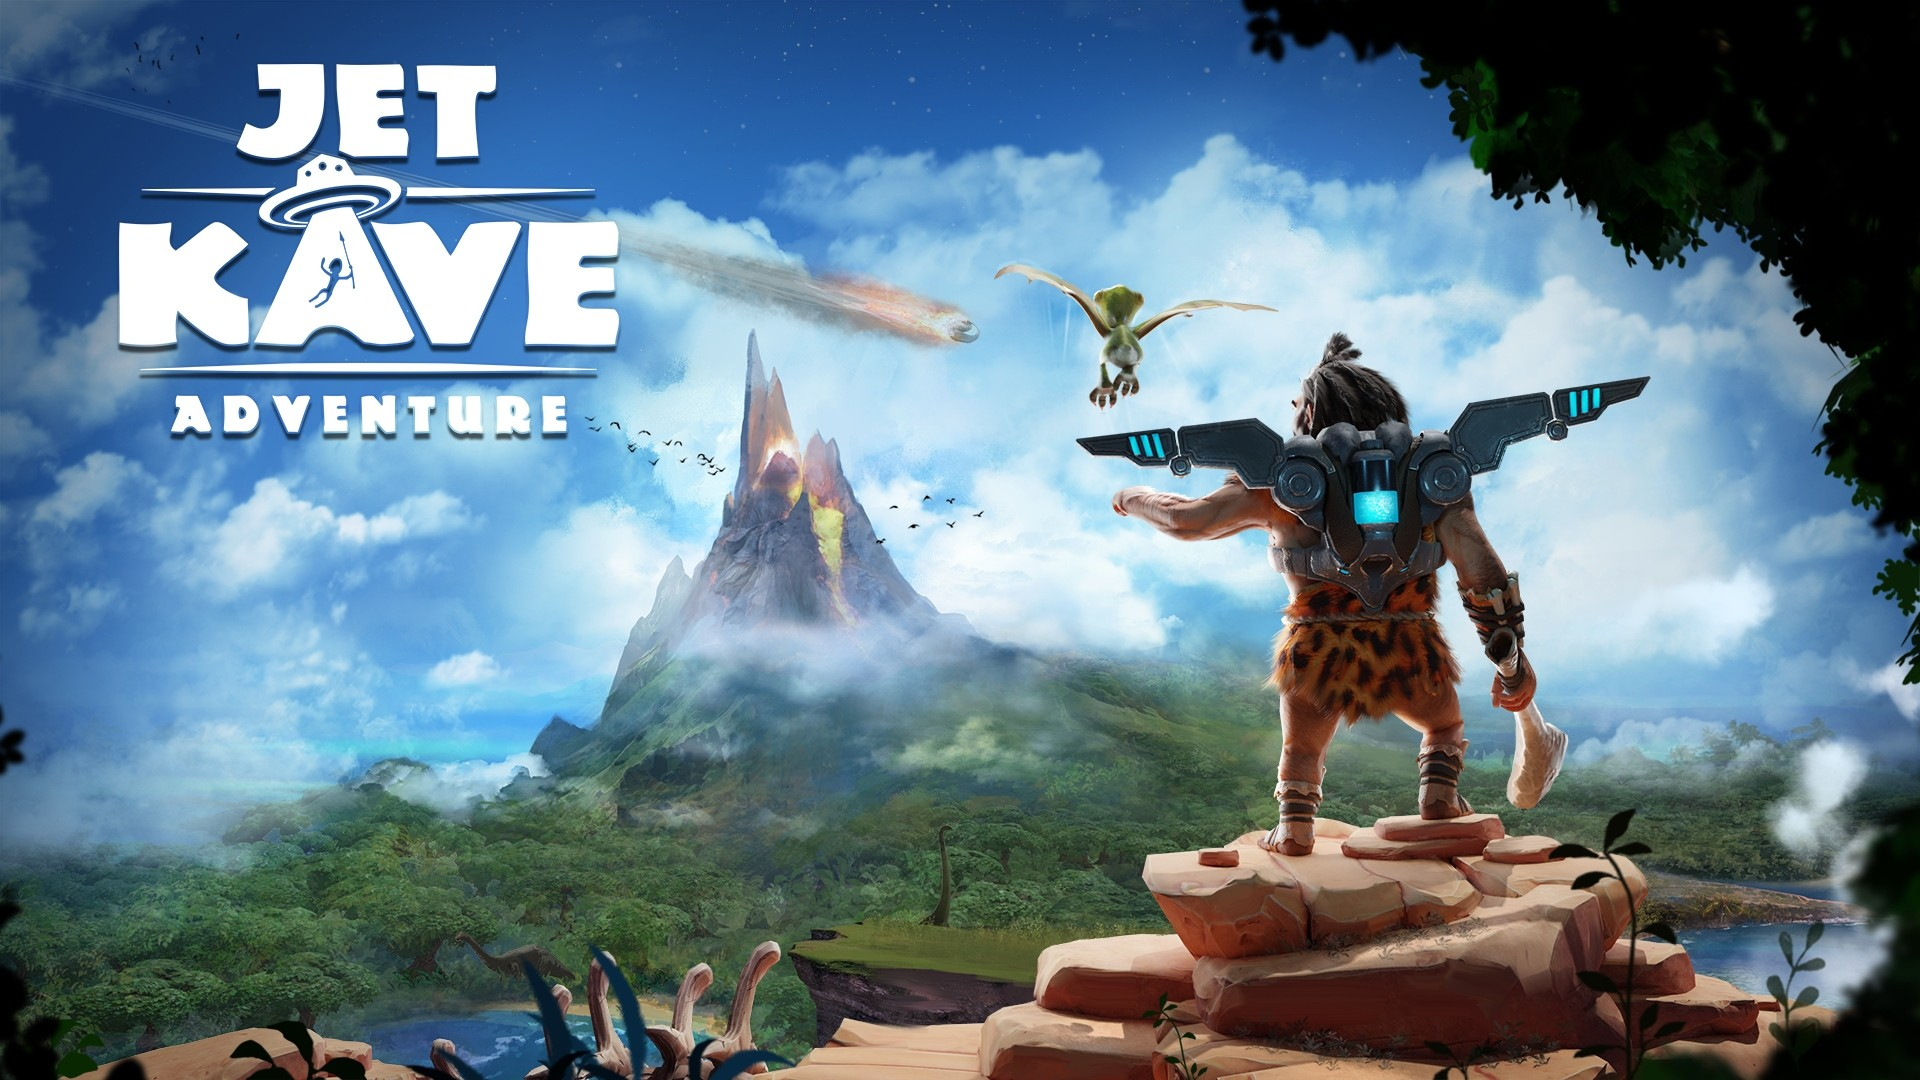 Video For Stone-Fiction Platformer Jet Kave Adventure Now Available